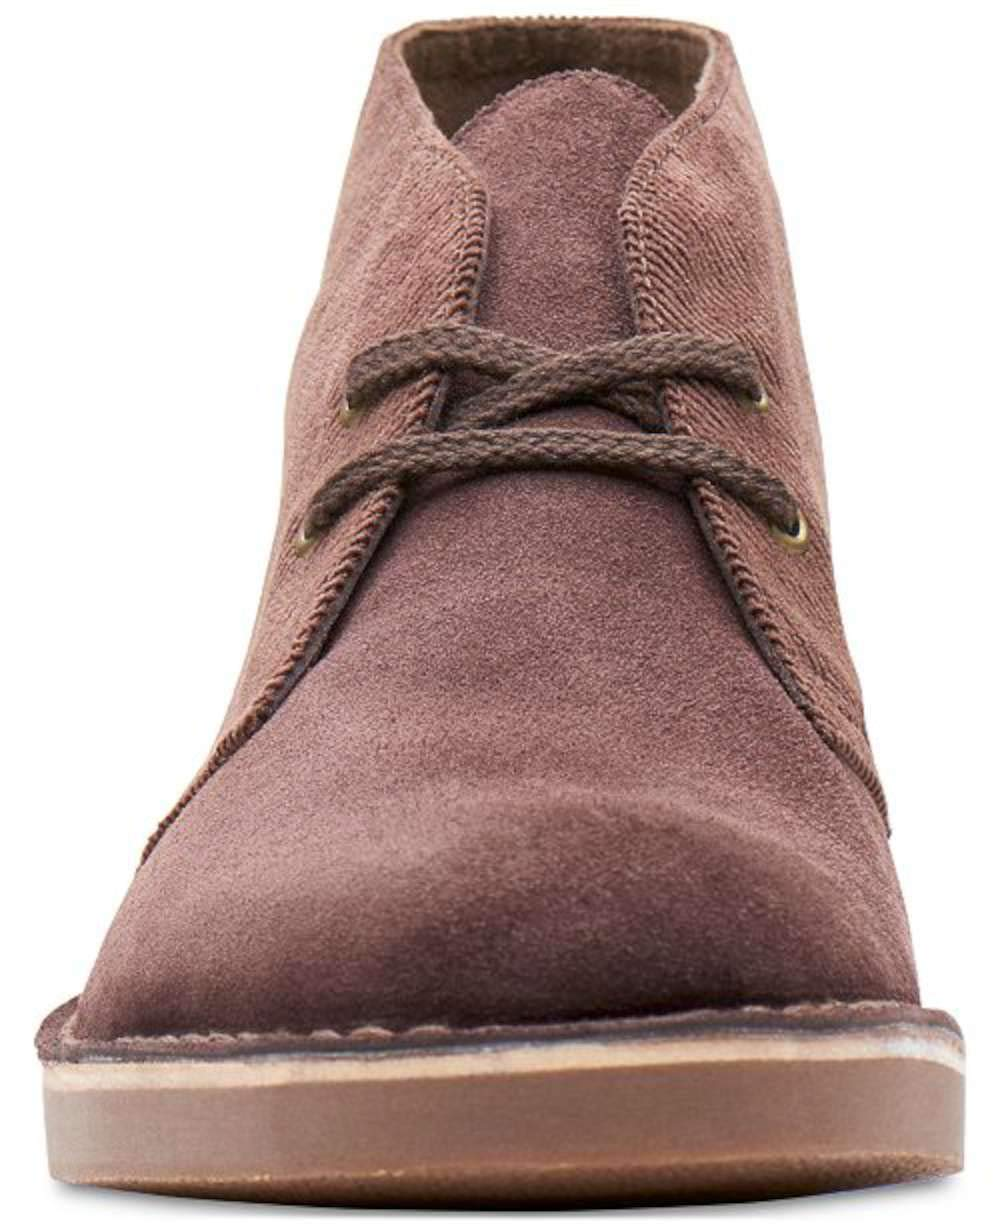 CLARKS Mens Bushacre 2 Fabric Closed Toe Ankle Fashion, Brown Cord, Size 9.0 3